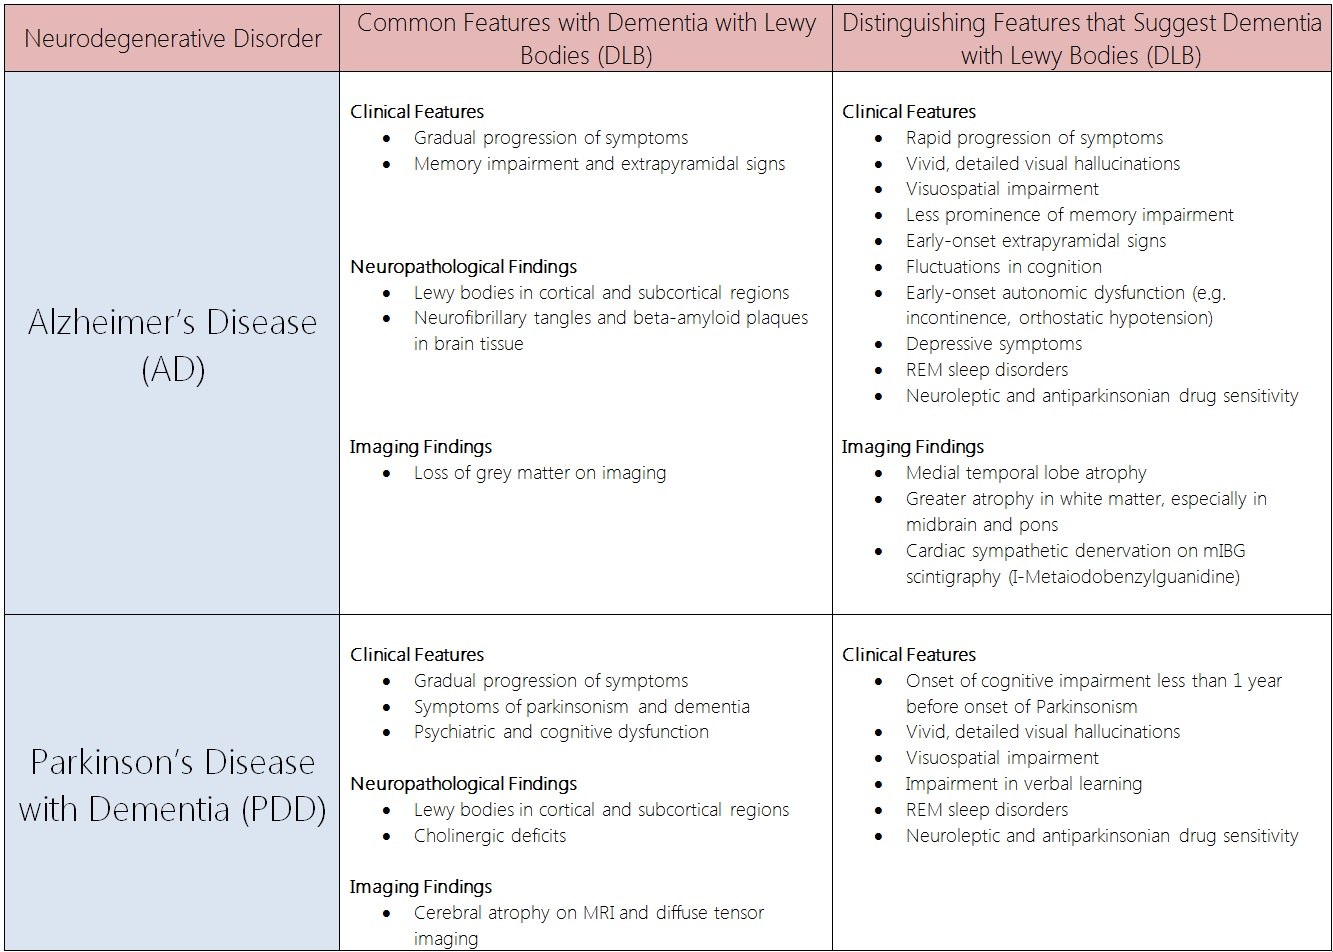 Comparison Table Distinguishing Features Dementia with Lewy Bodies vs. Alzheimer's disease and Parkinson's disease with dementia.jpg